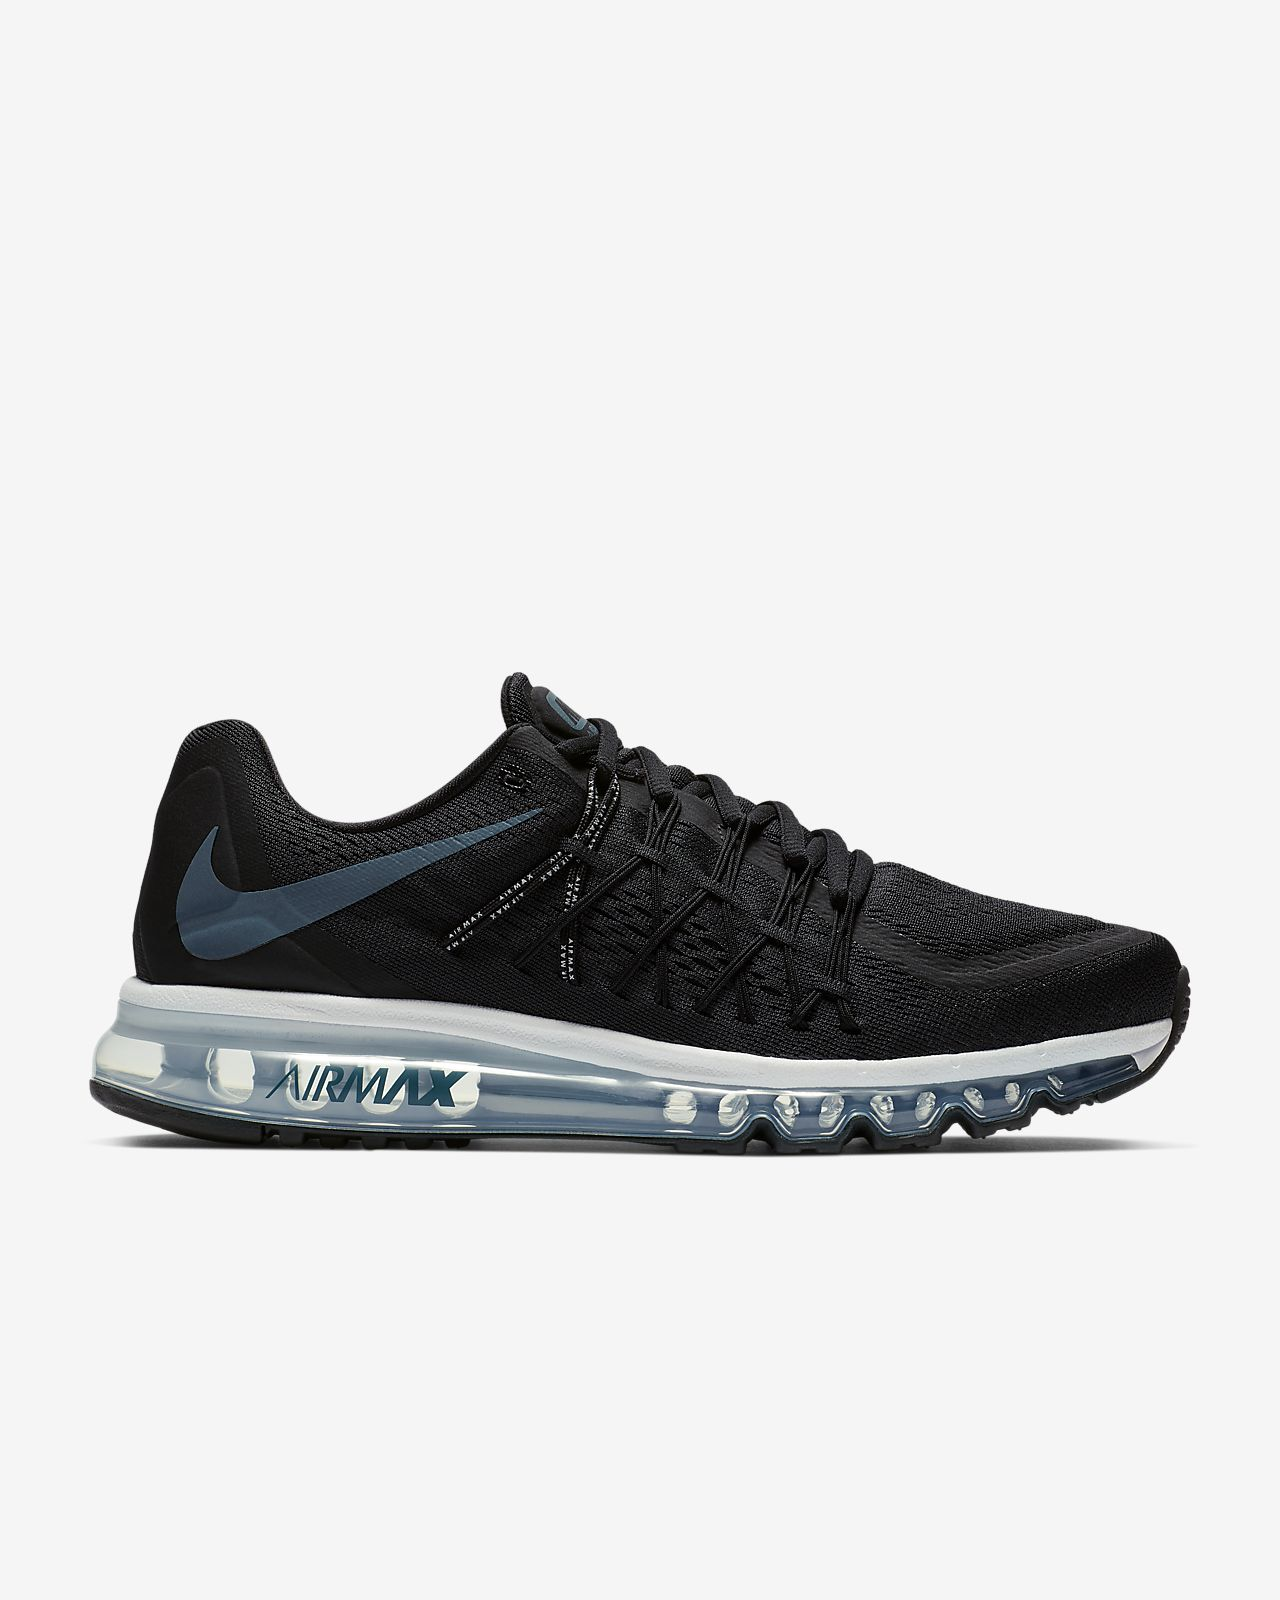 factory price 8df61 727ad Chaussure Nike Air Max 2015 pour Homme. Nike.com FR